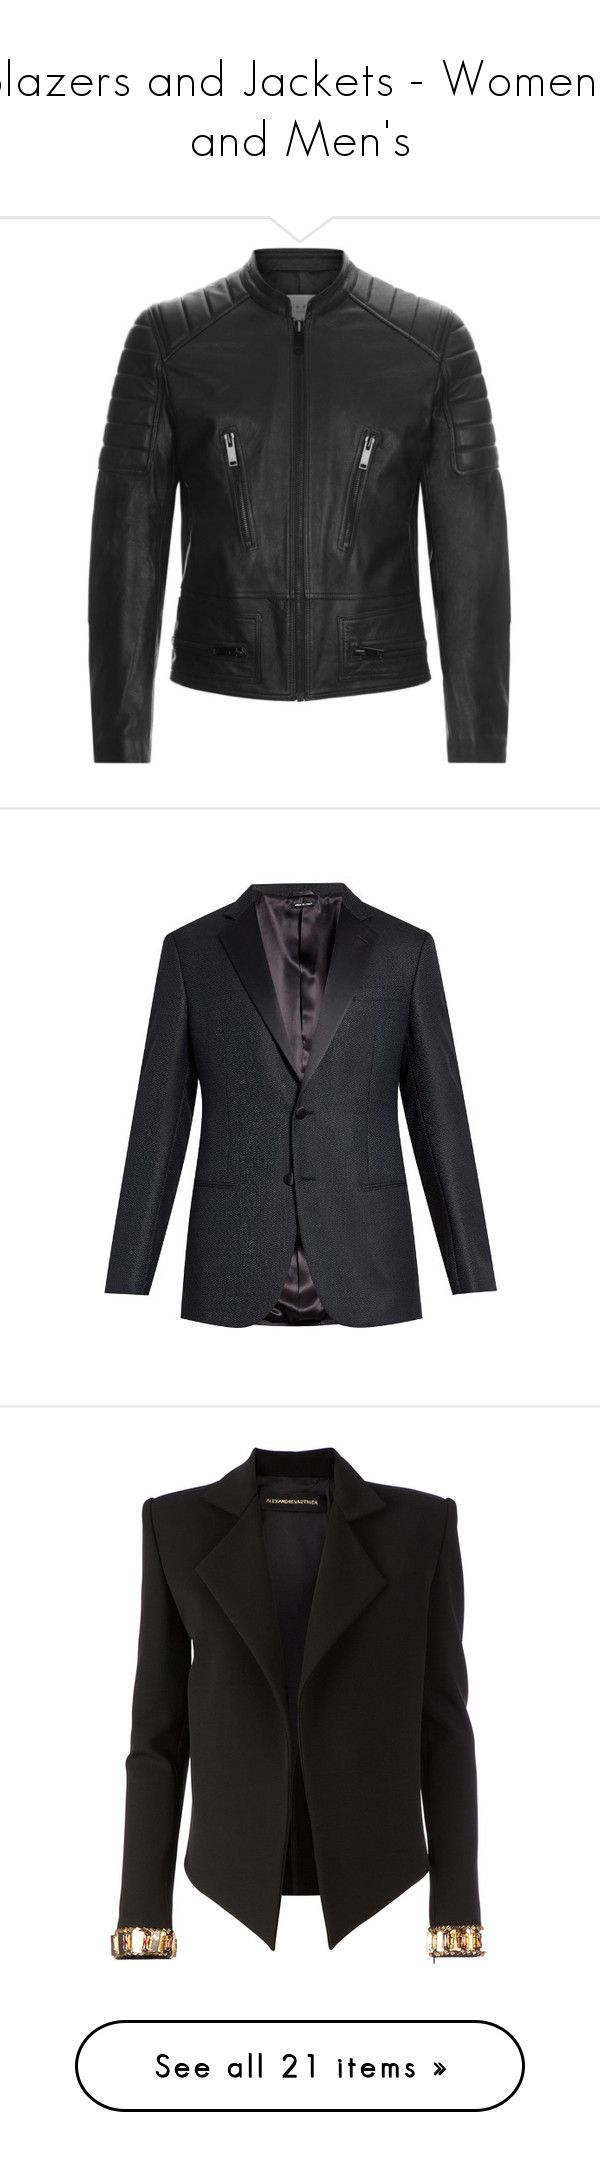 Blazers and Jackets - Women's and Men's by tina-abbara on Polyvore featuring polyvore, men's fashion, men's clothing, men's outerwear, men's jackets, jackets, men, clothing, men's jacket, outerwear, mens jackets, mens leather jackets, mens zip jacket, men's suits, male clothes, navy, mens tailored suits, giorgio armani mens suits, mens navy blue suit, mens peak lapel suit, mens navy suit, women's fashion, blazers, black, alexandre vauthier, embellished jacket, cuffed blazer, blazer jacket…